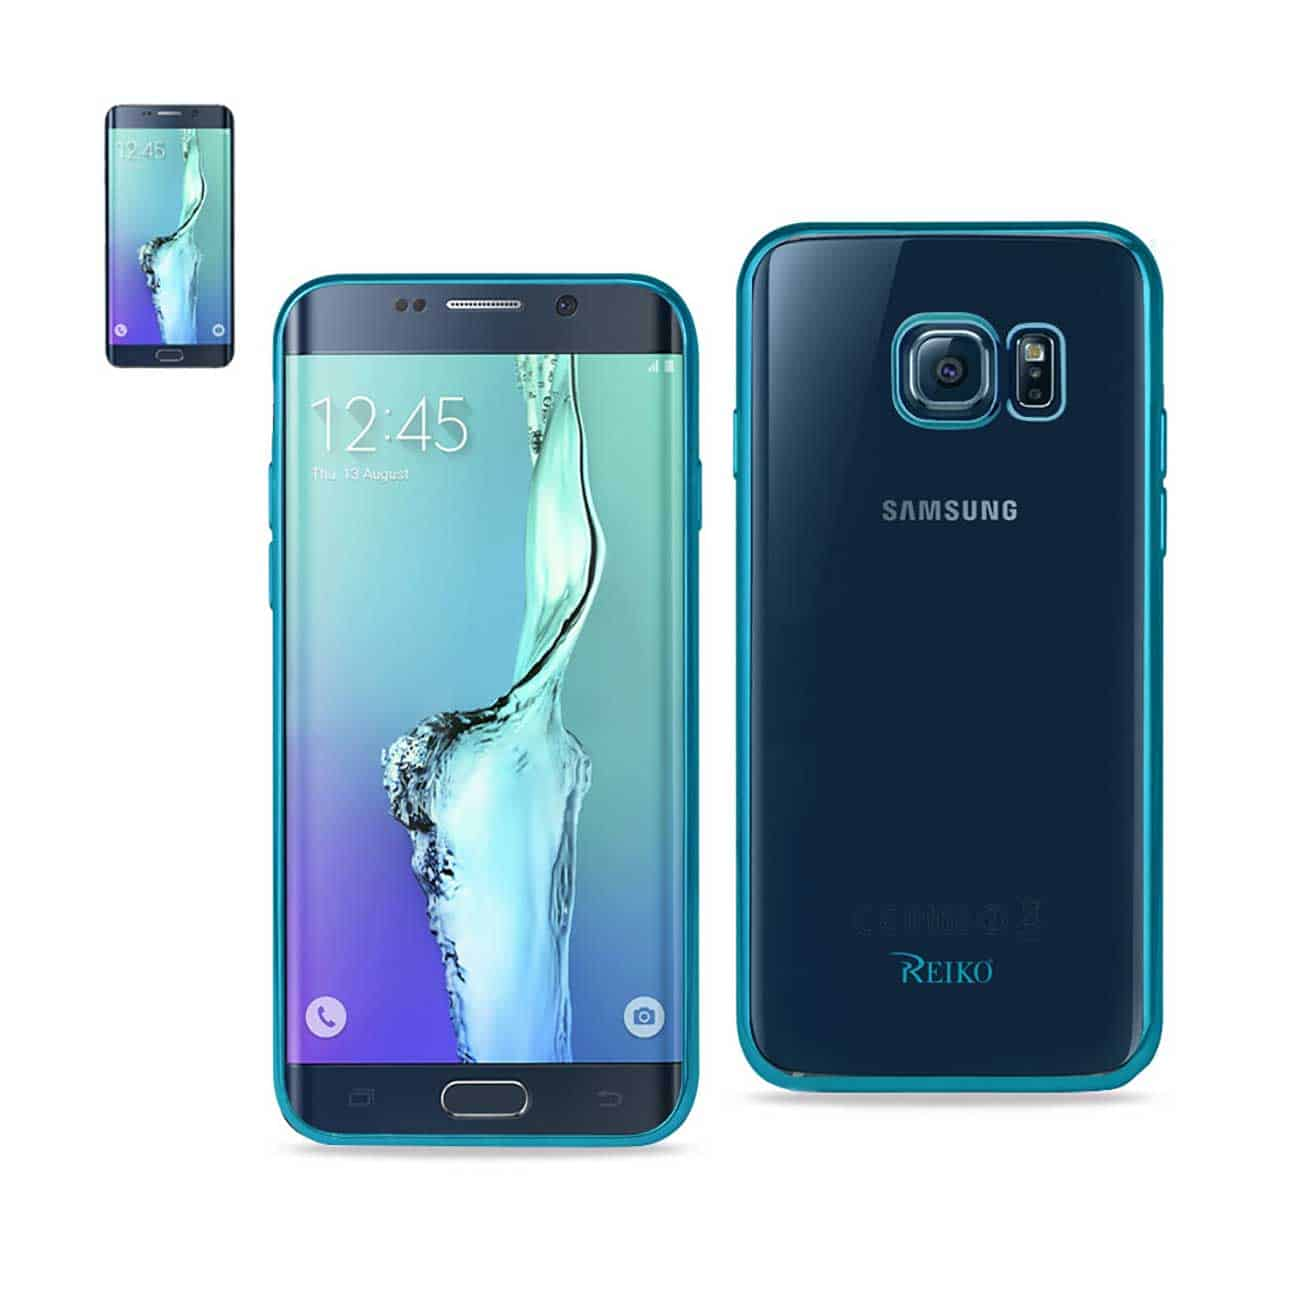 SAMSUNG GALAXY S6 EDGE PLUS FRAME CASE IN SHINY BLUE